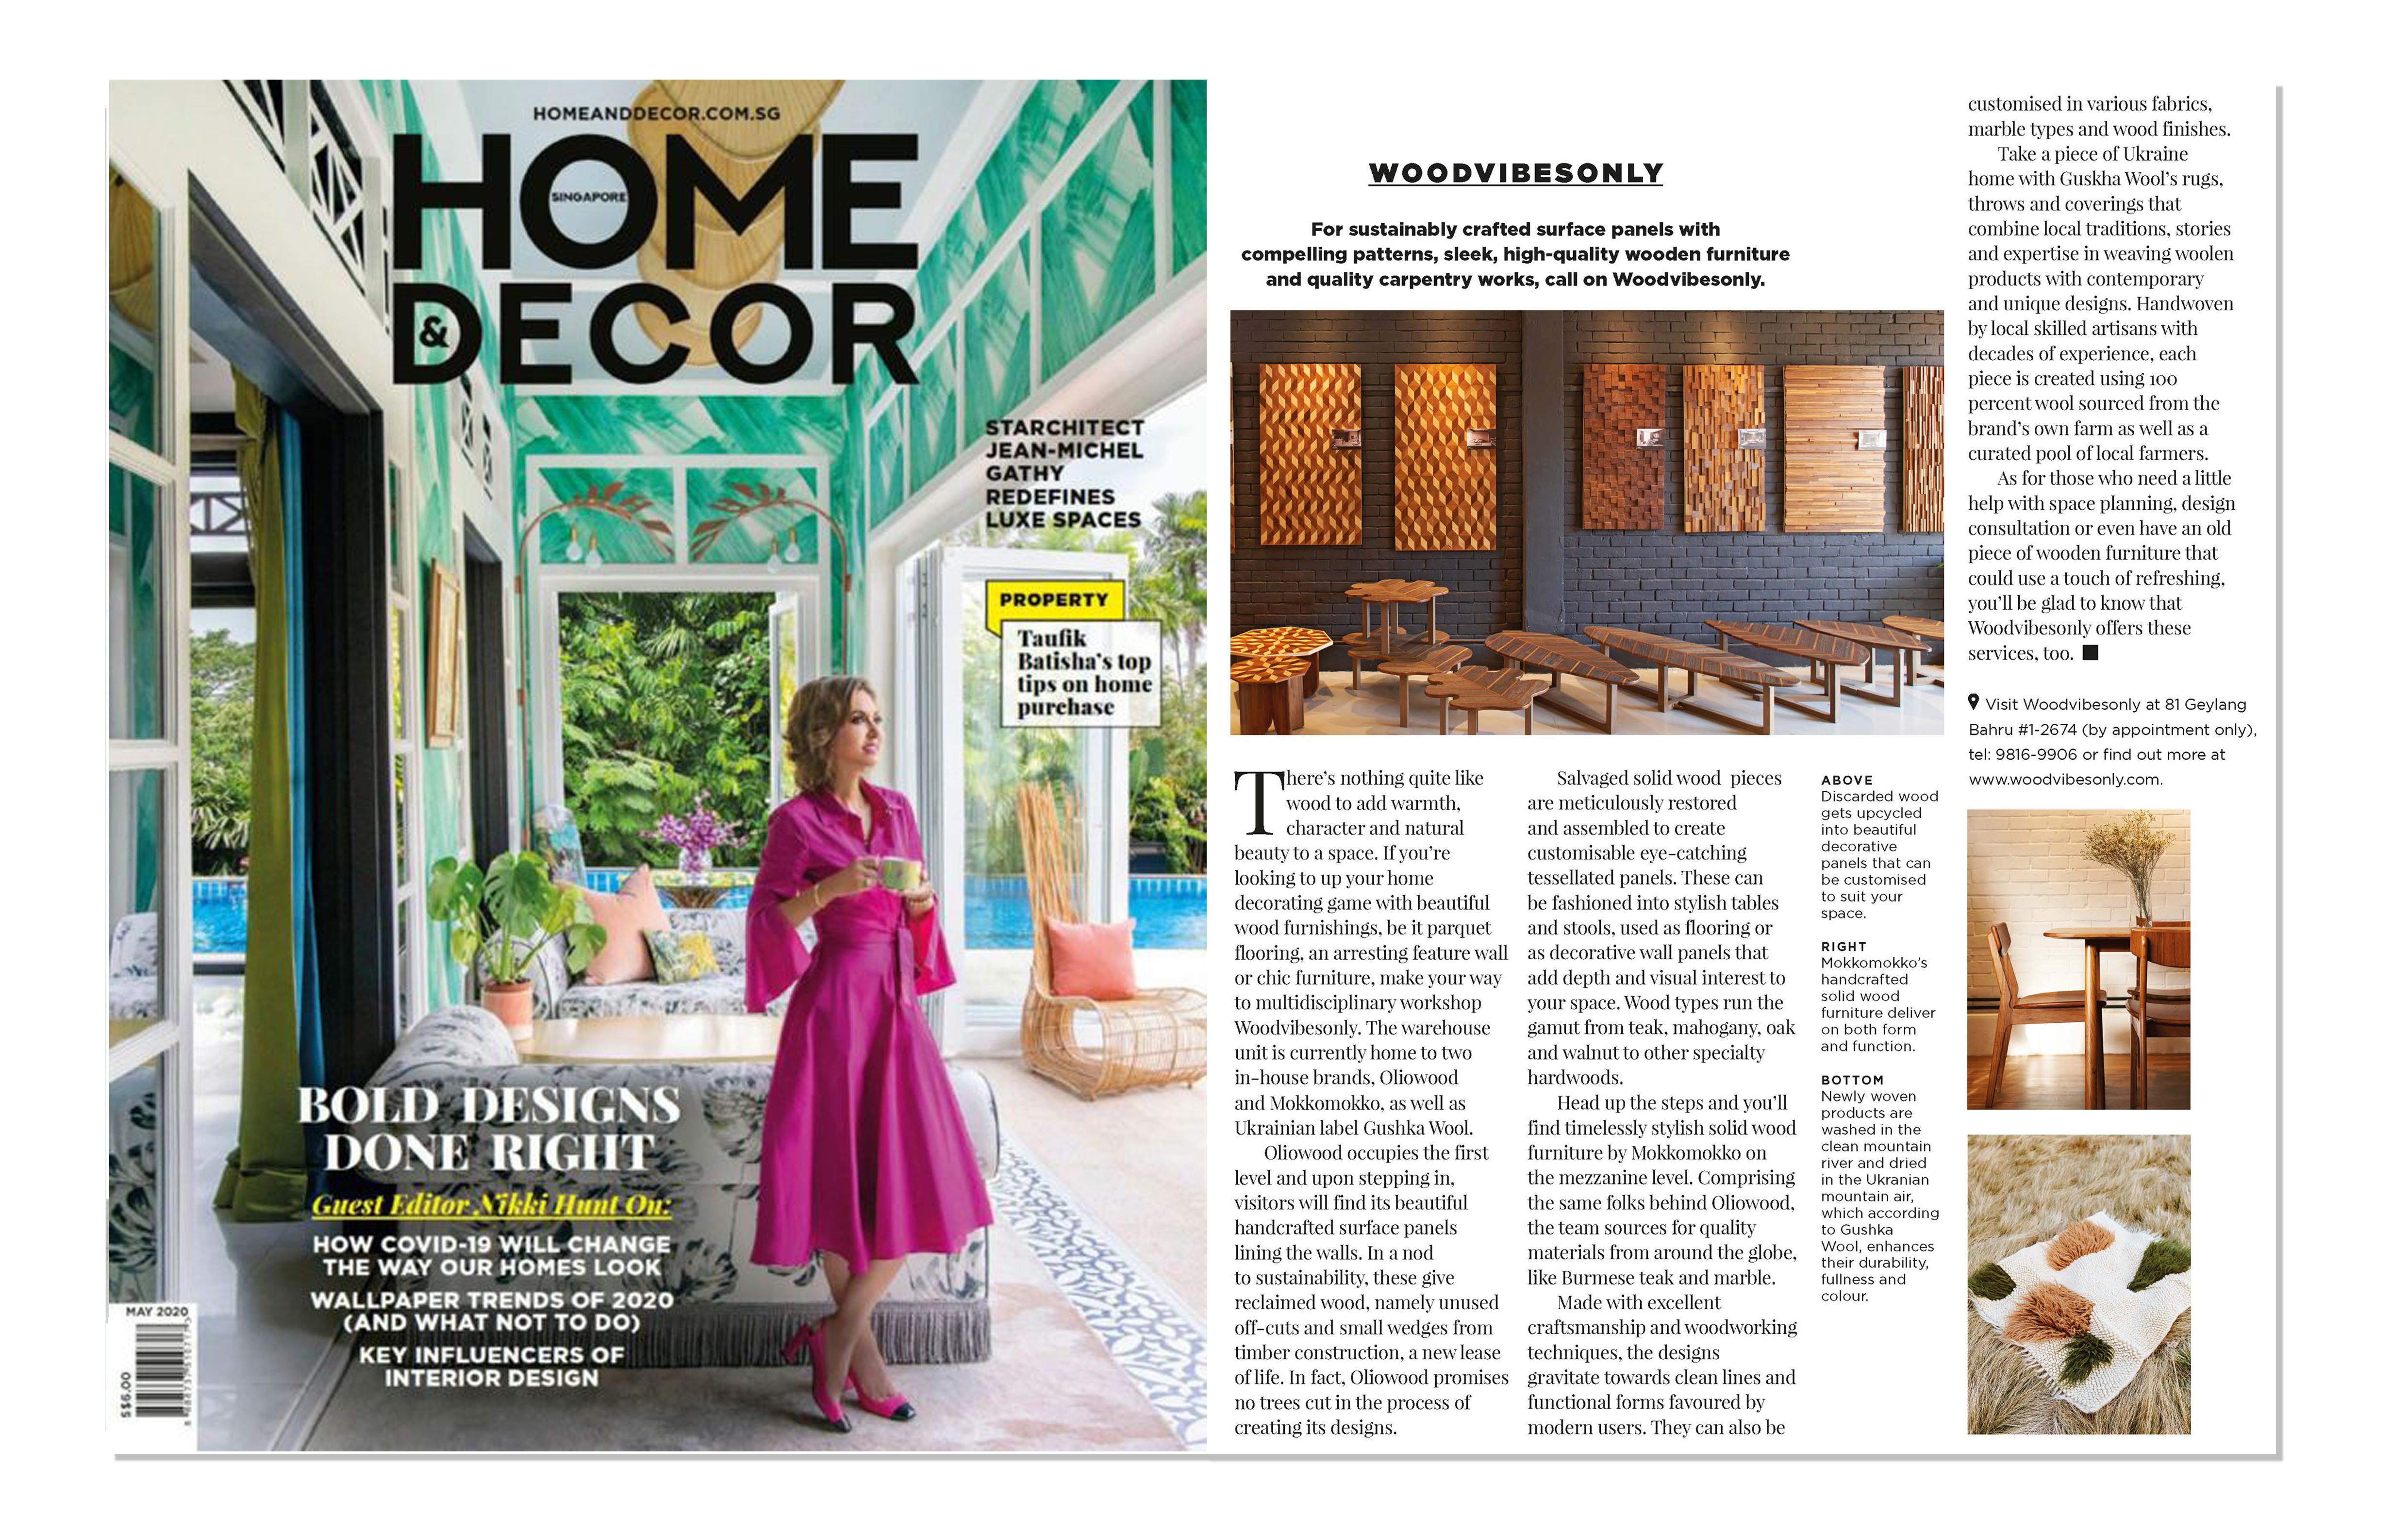 Home & Decor May 2020